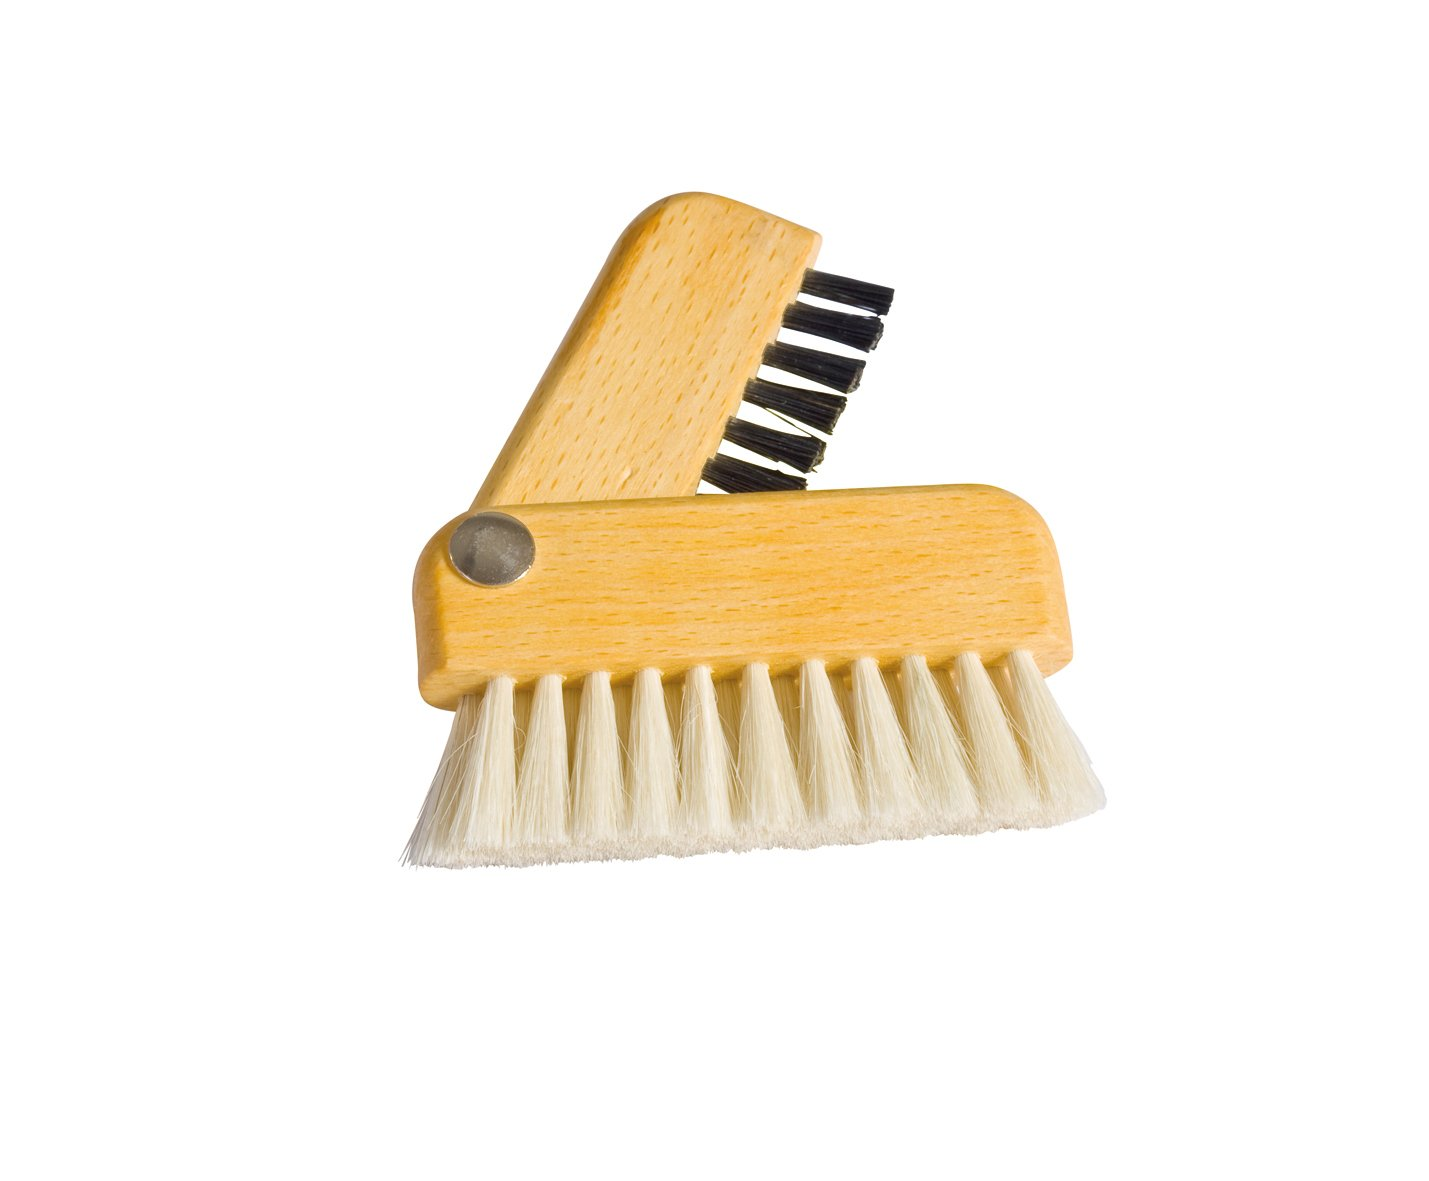 REDECKER Goat Hair/Natural Pig Bristle Laptop Brush with Oiled Beechwood Handle, 3-Inches